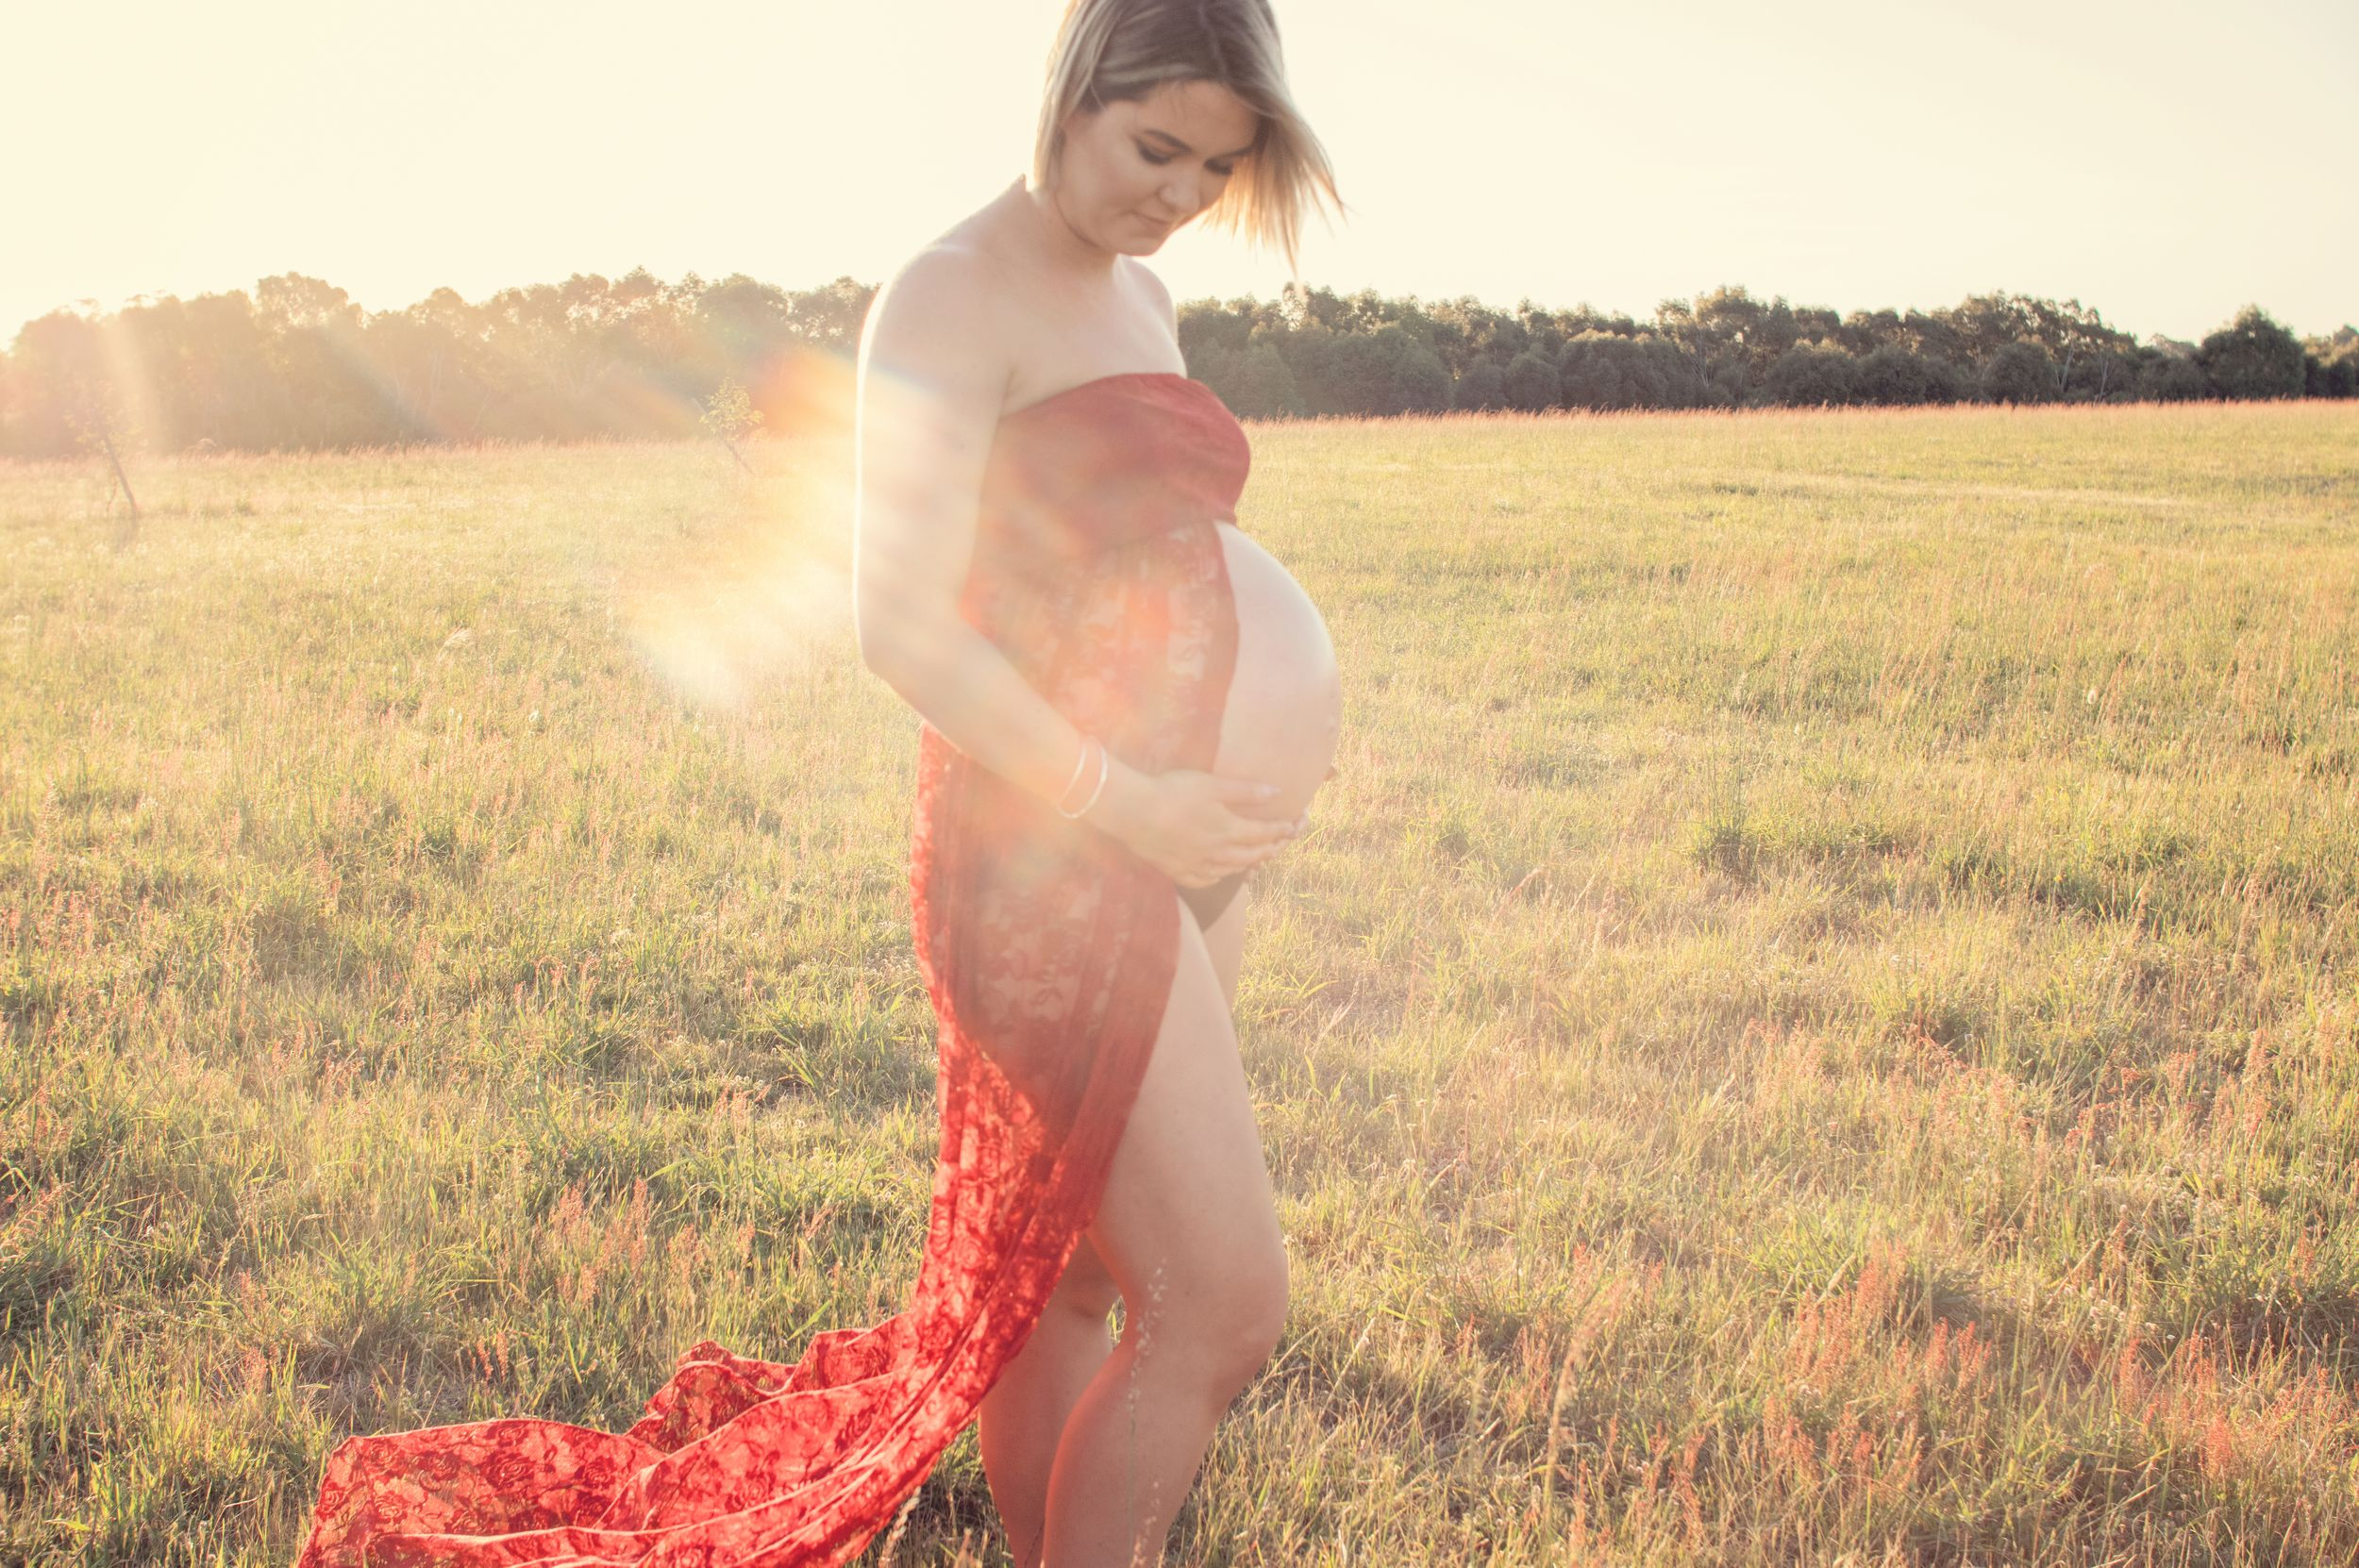 pregnant woman embracing belly in red dress